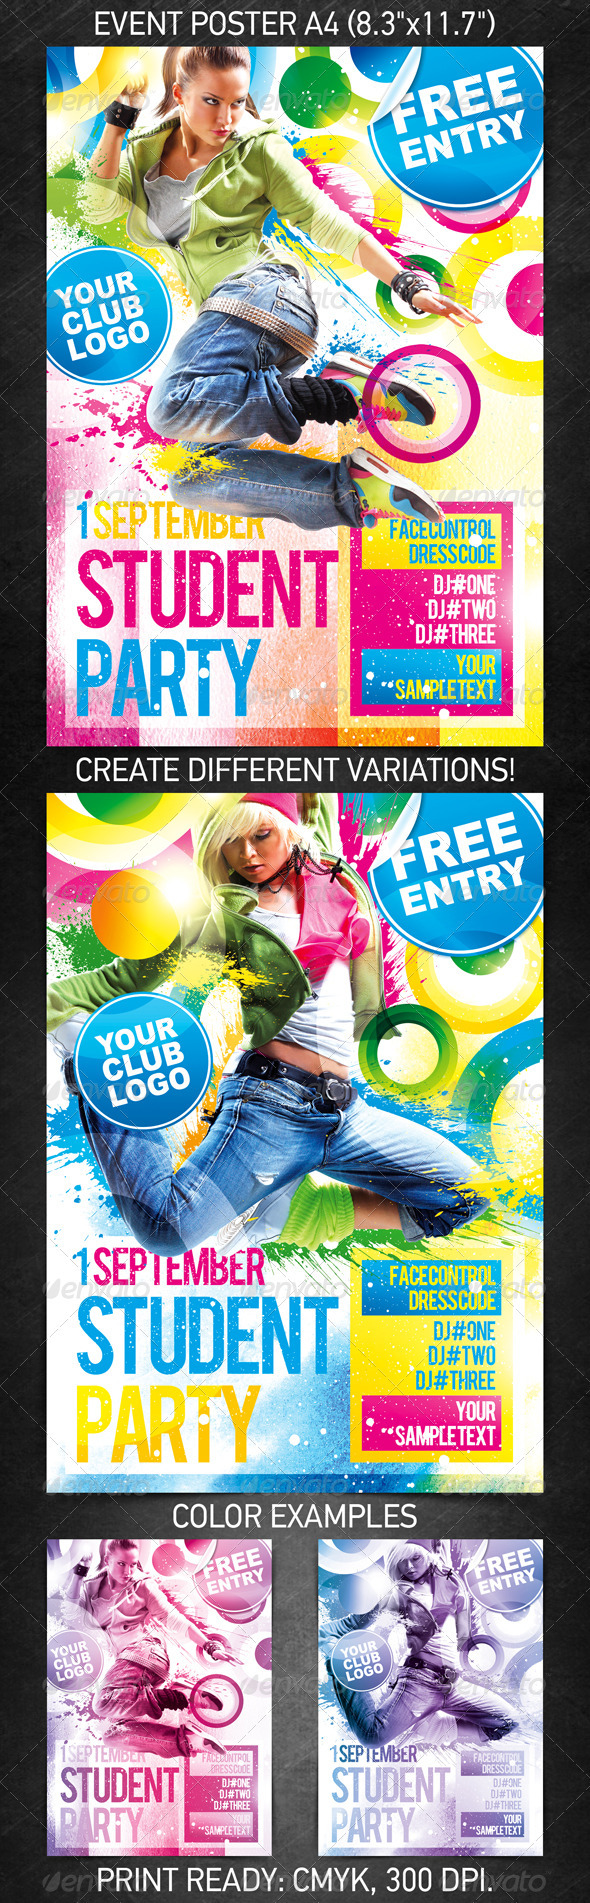 GraphicRiver Student Party Poster 462498